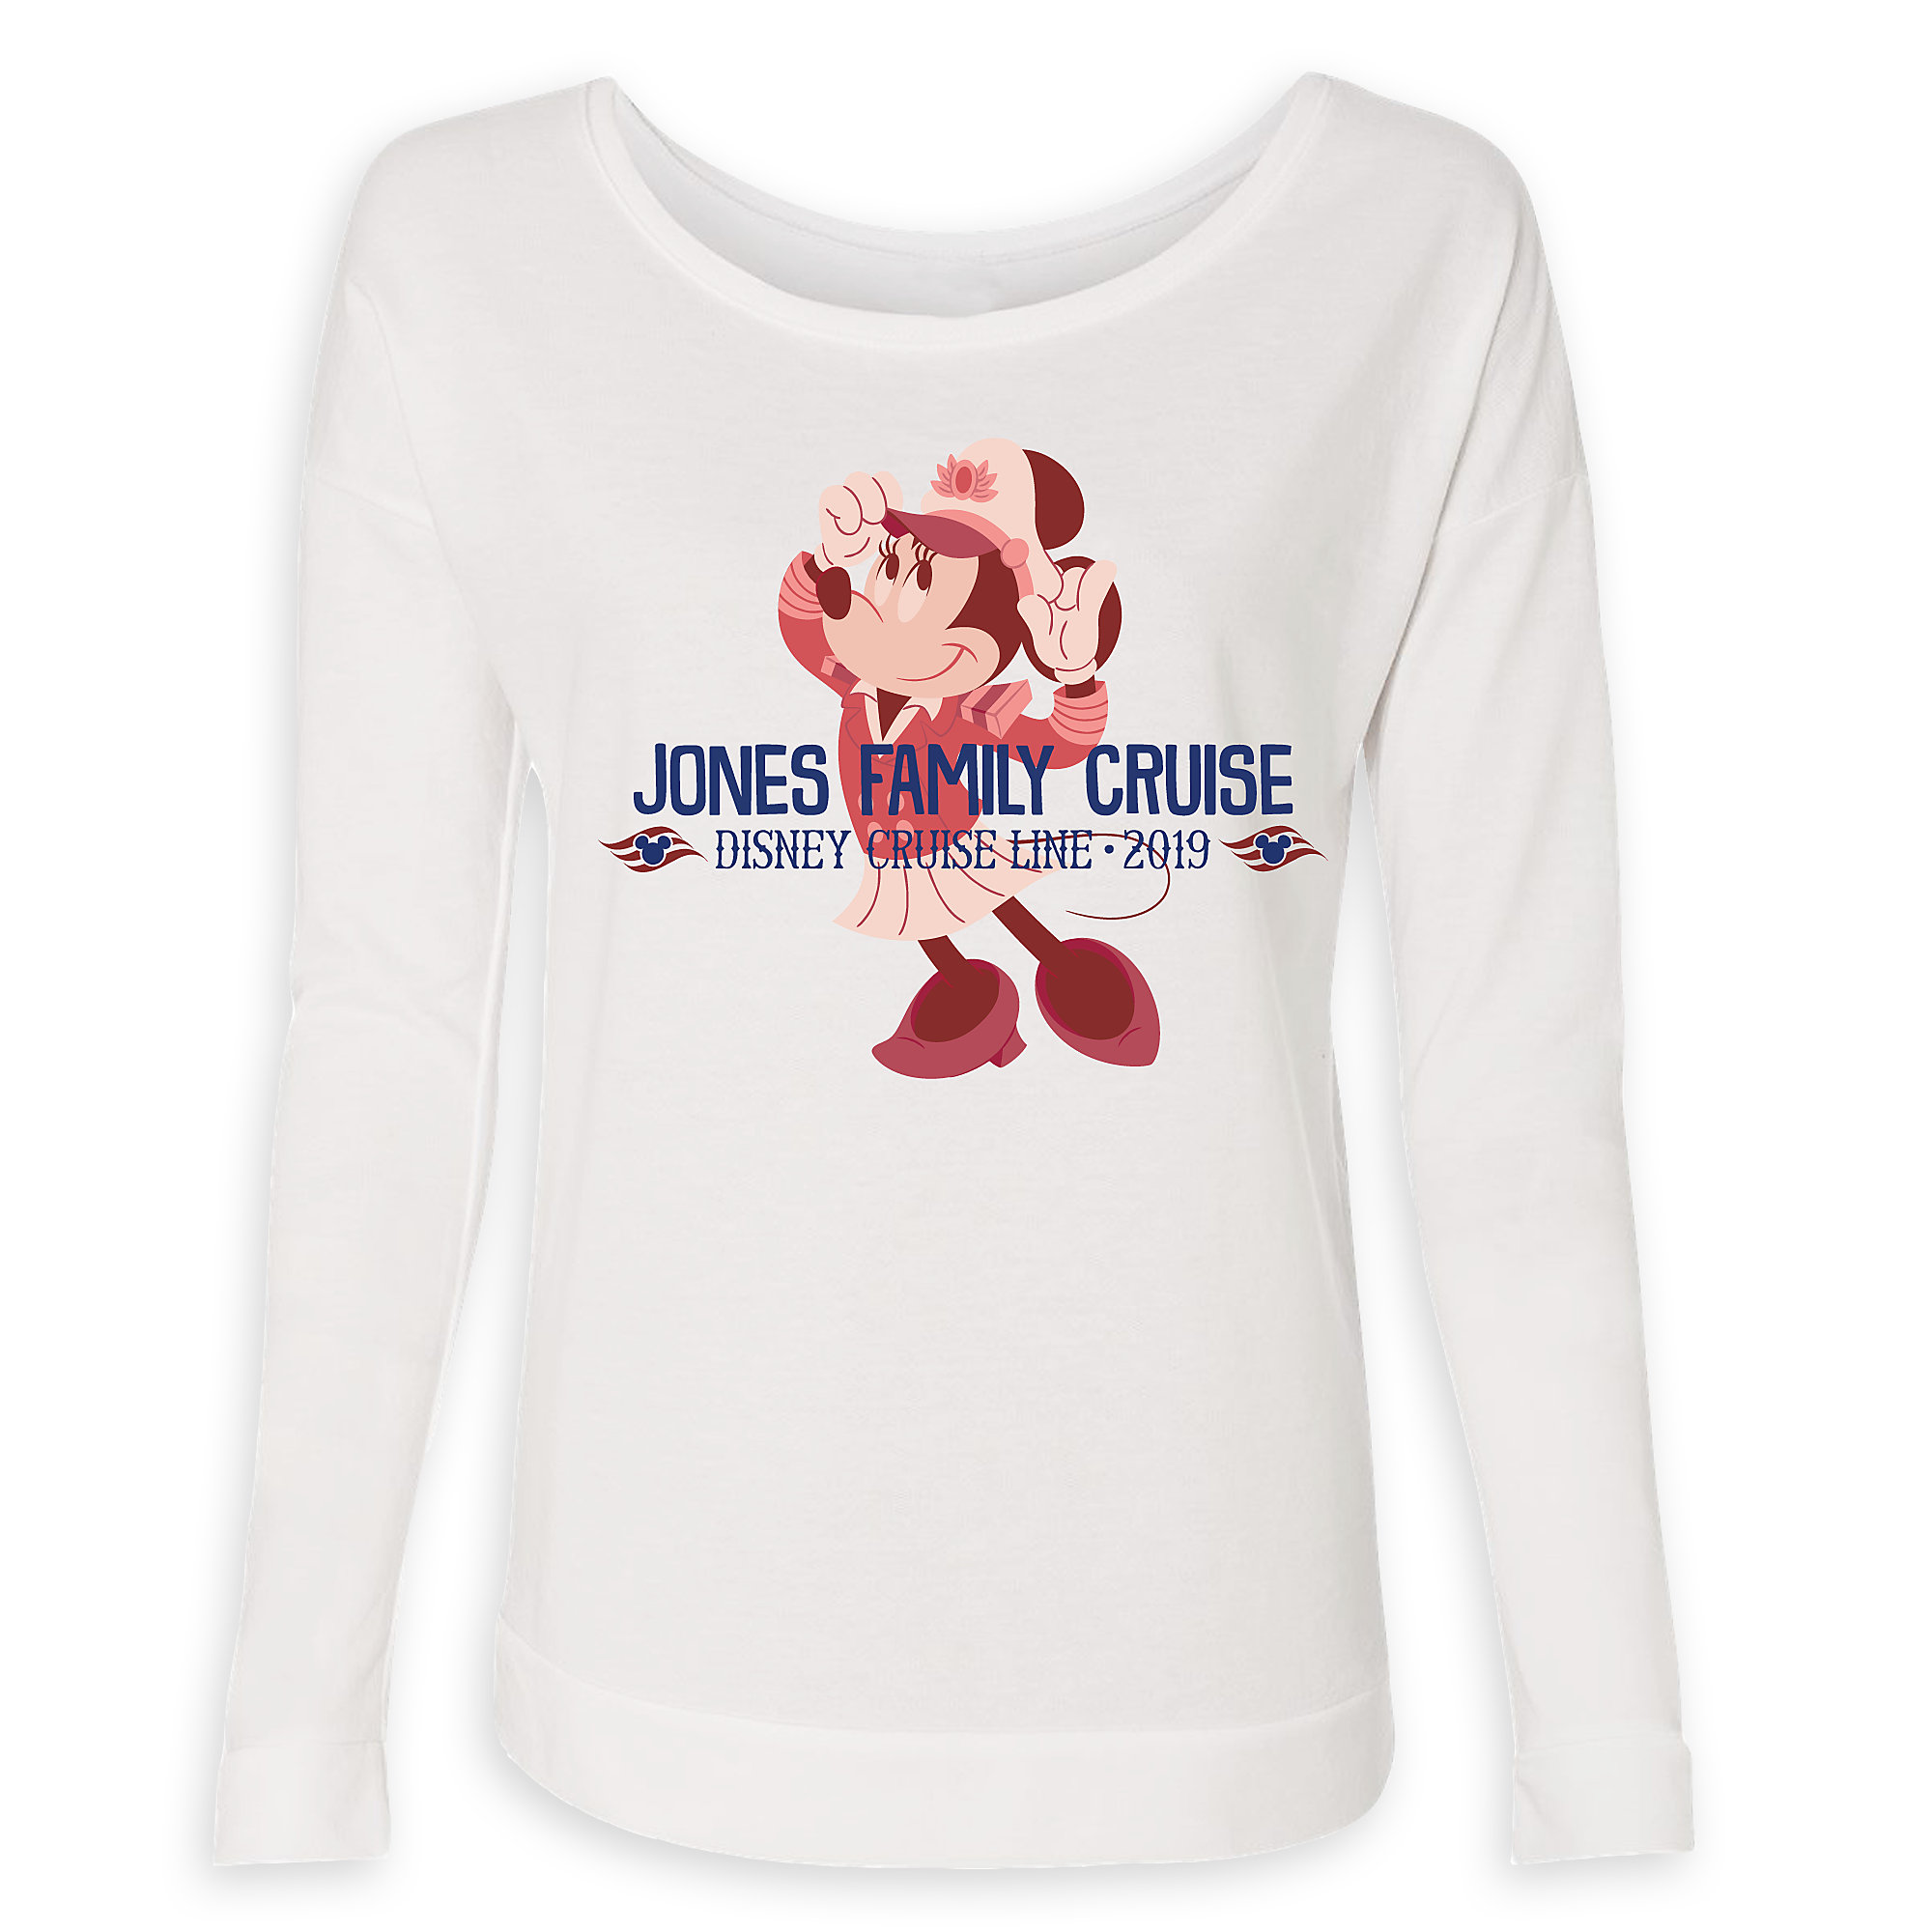 4cc341813a8b Women's Captain Minnie Mouse Disney Cruise Line Family Cruise 2019 Long Sleeve  T-Shirt – Customized is now out for purchase